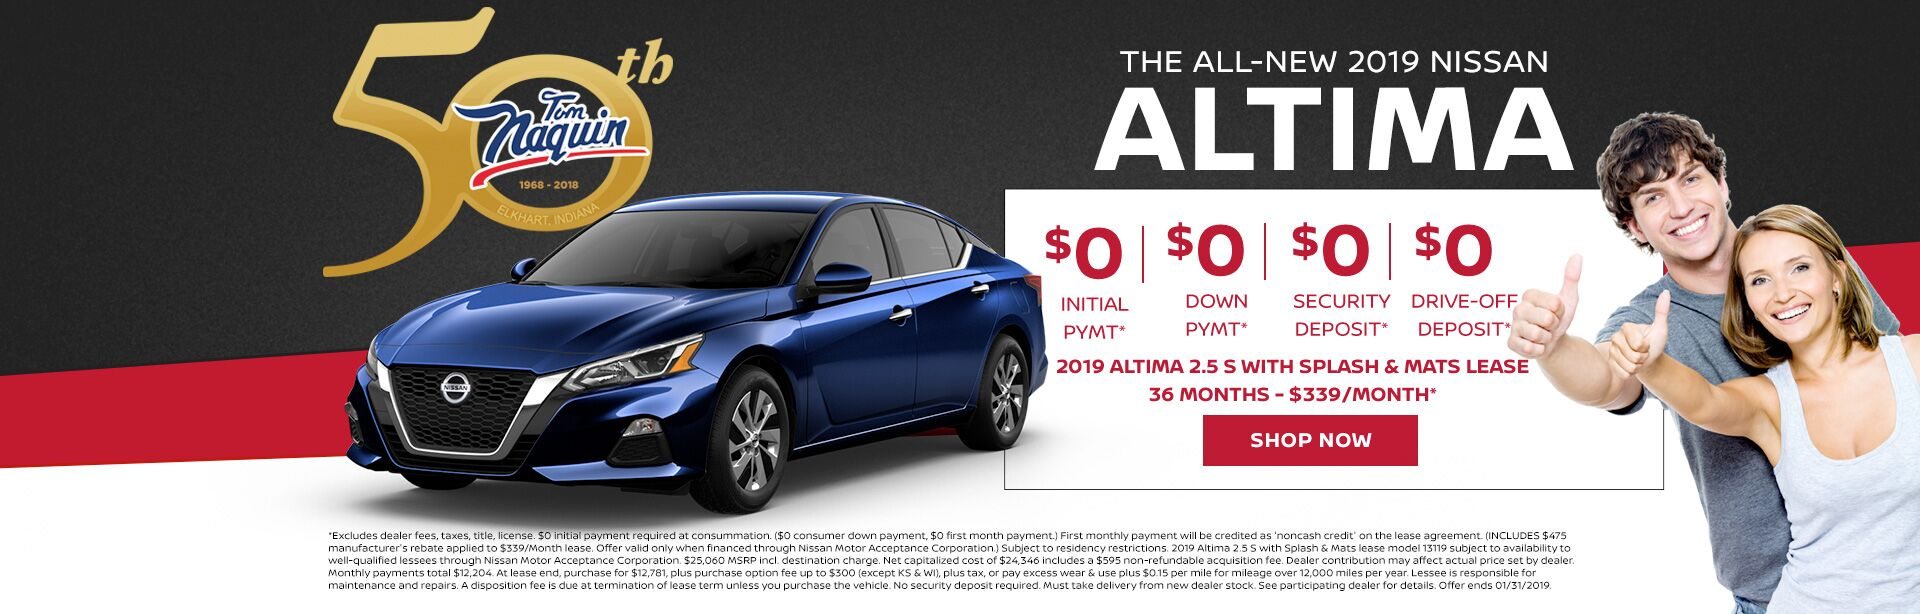 The All-New 2019 NIssan Altima